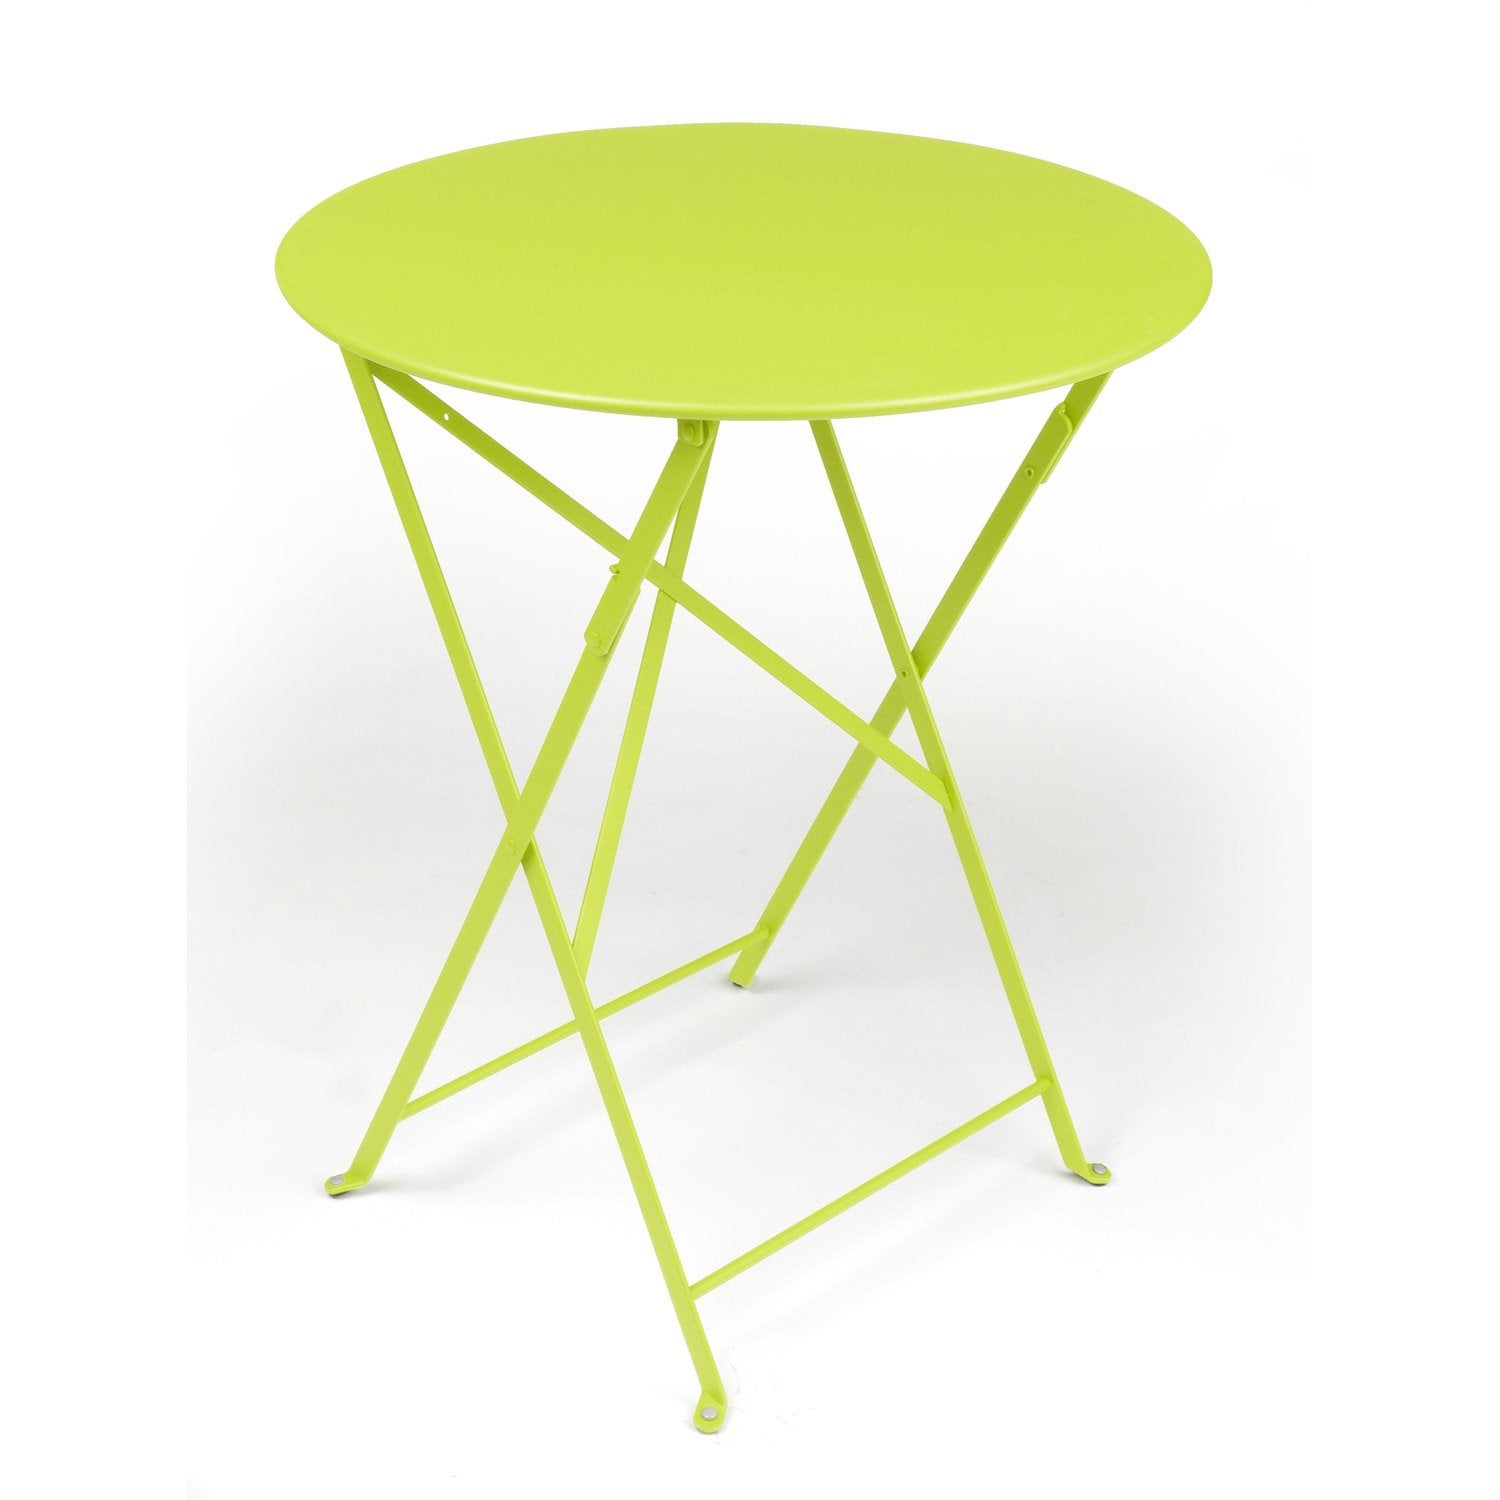 Table Ronde Fermob Elegant Costa By Fermob Guridon Haut Blanc Coton With Table Ronde Fermob